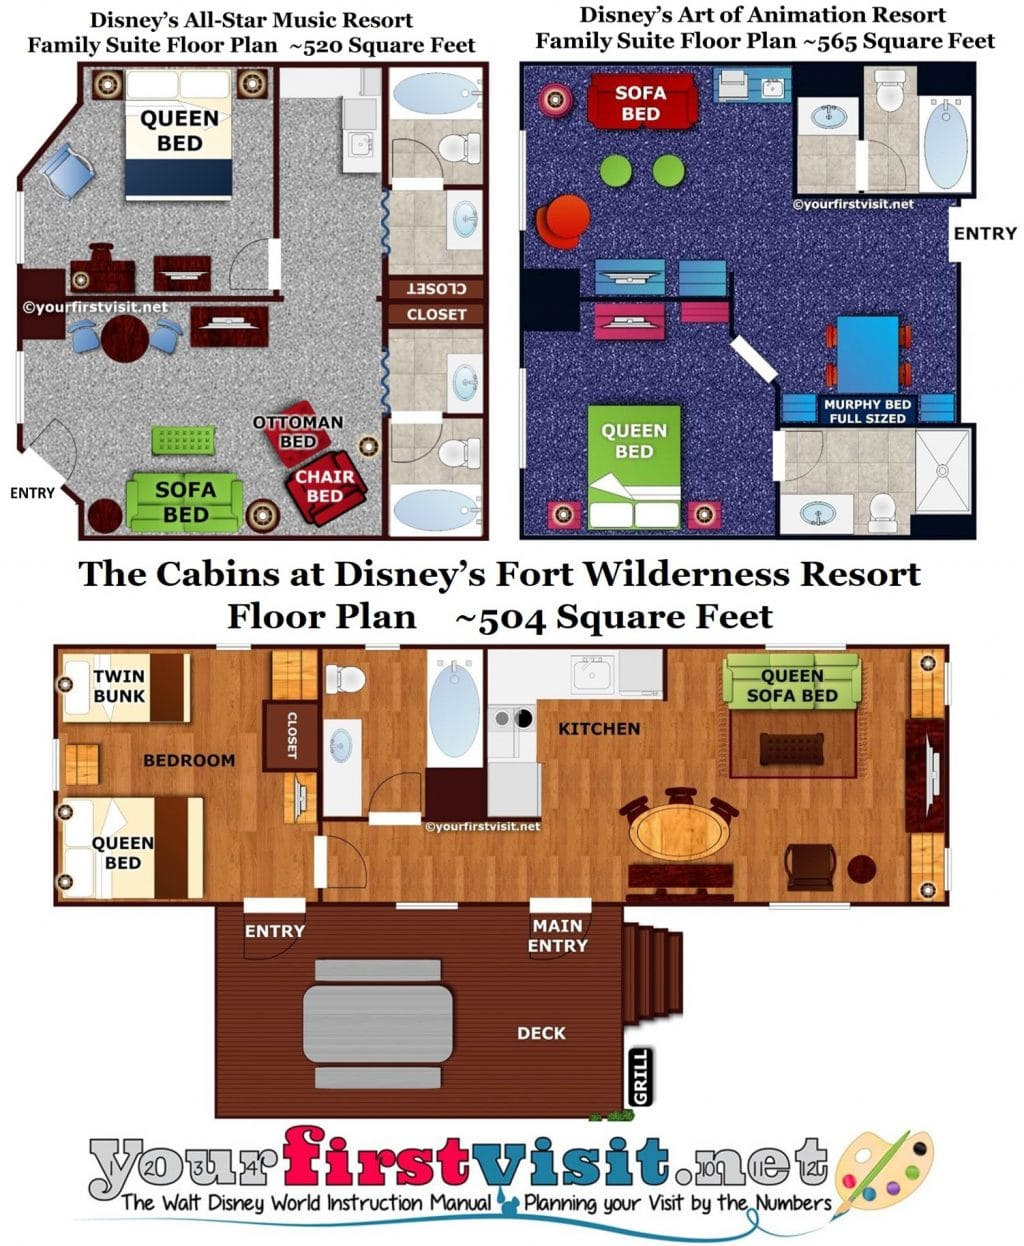 Review: The Family Suites at Disney\'s All-Star Music Resort